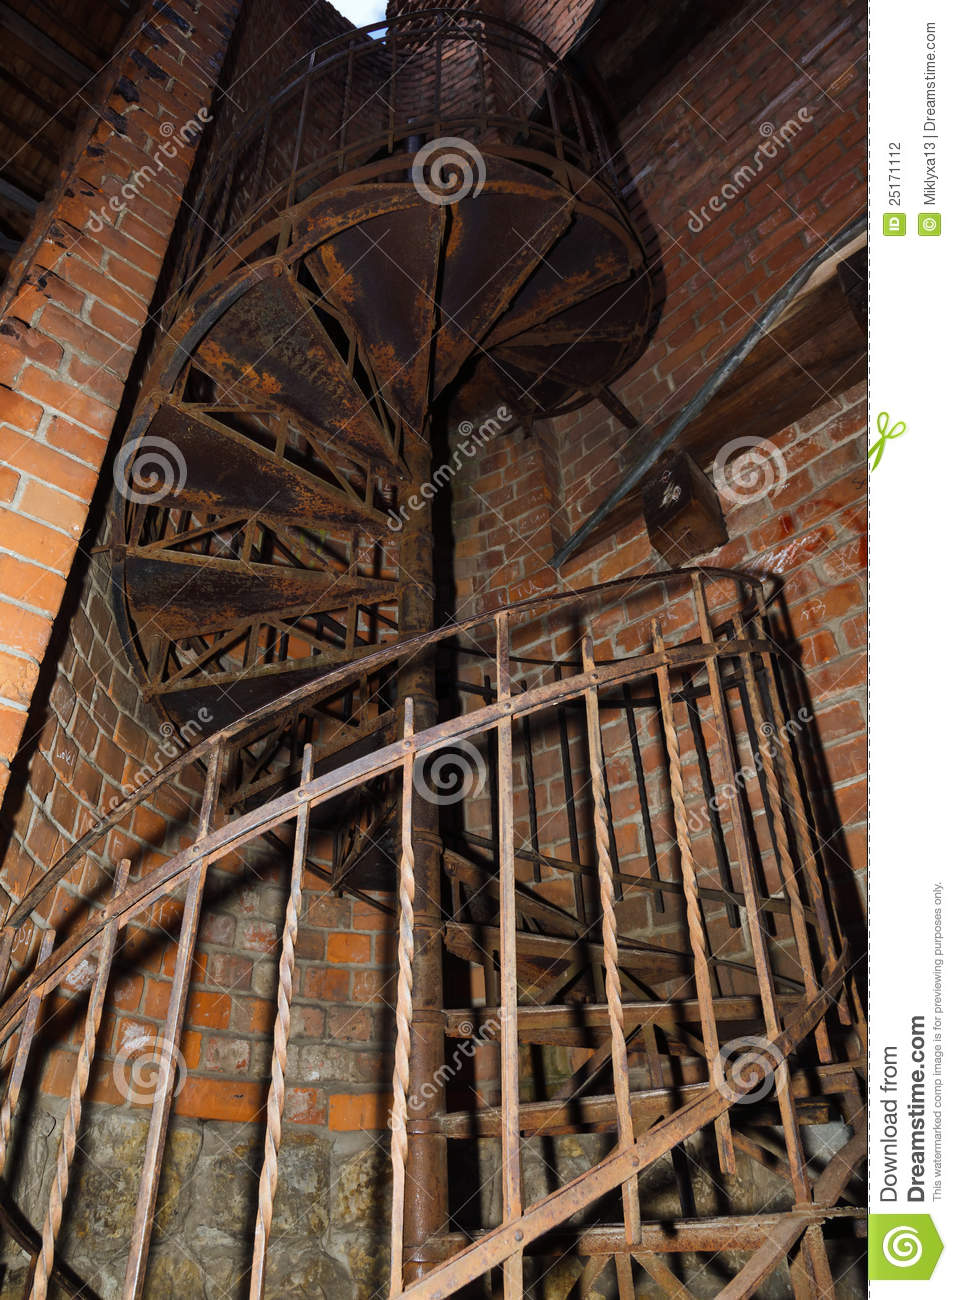 old iron spiral staircase stock photography image 25171112 building clipart transparent background building clipart black and white free